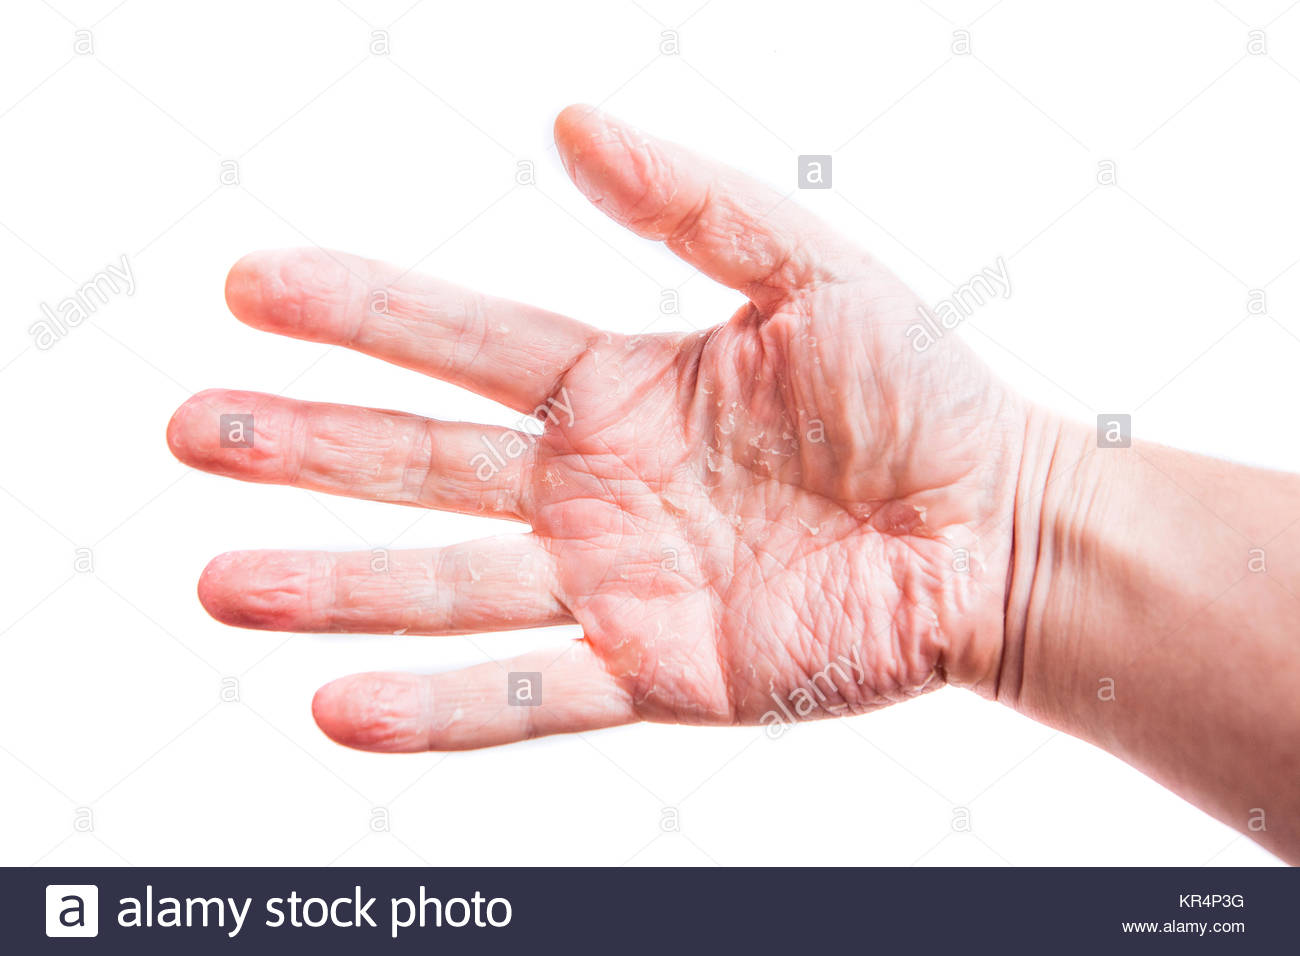 The problem with many people   eczema on hand Isolated background 1300x956